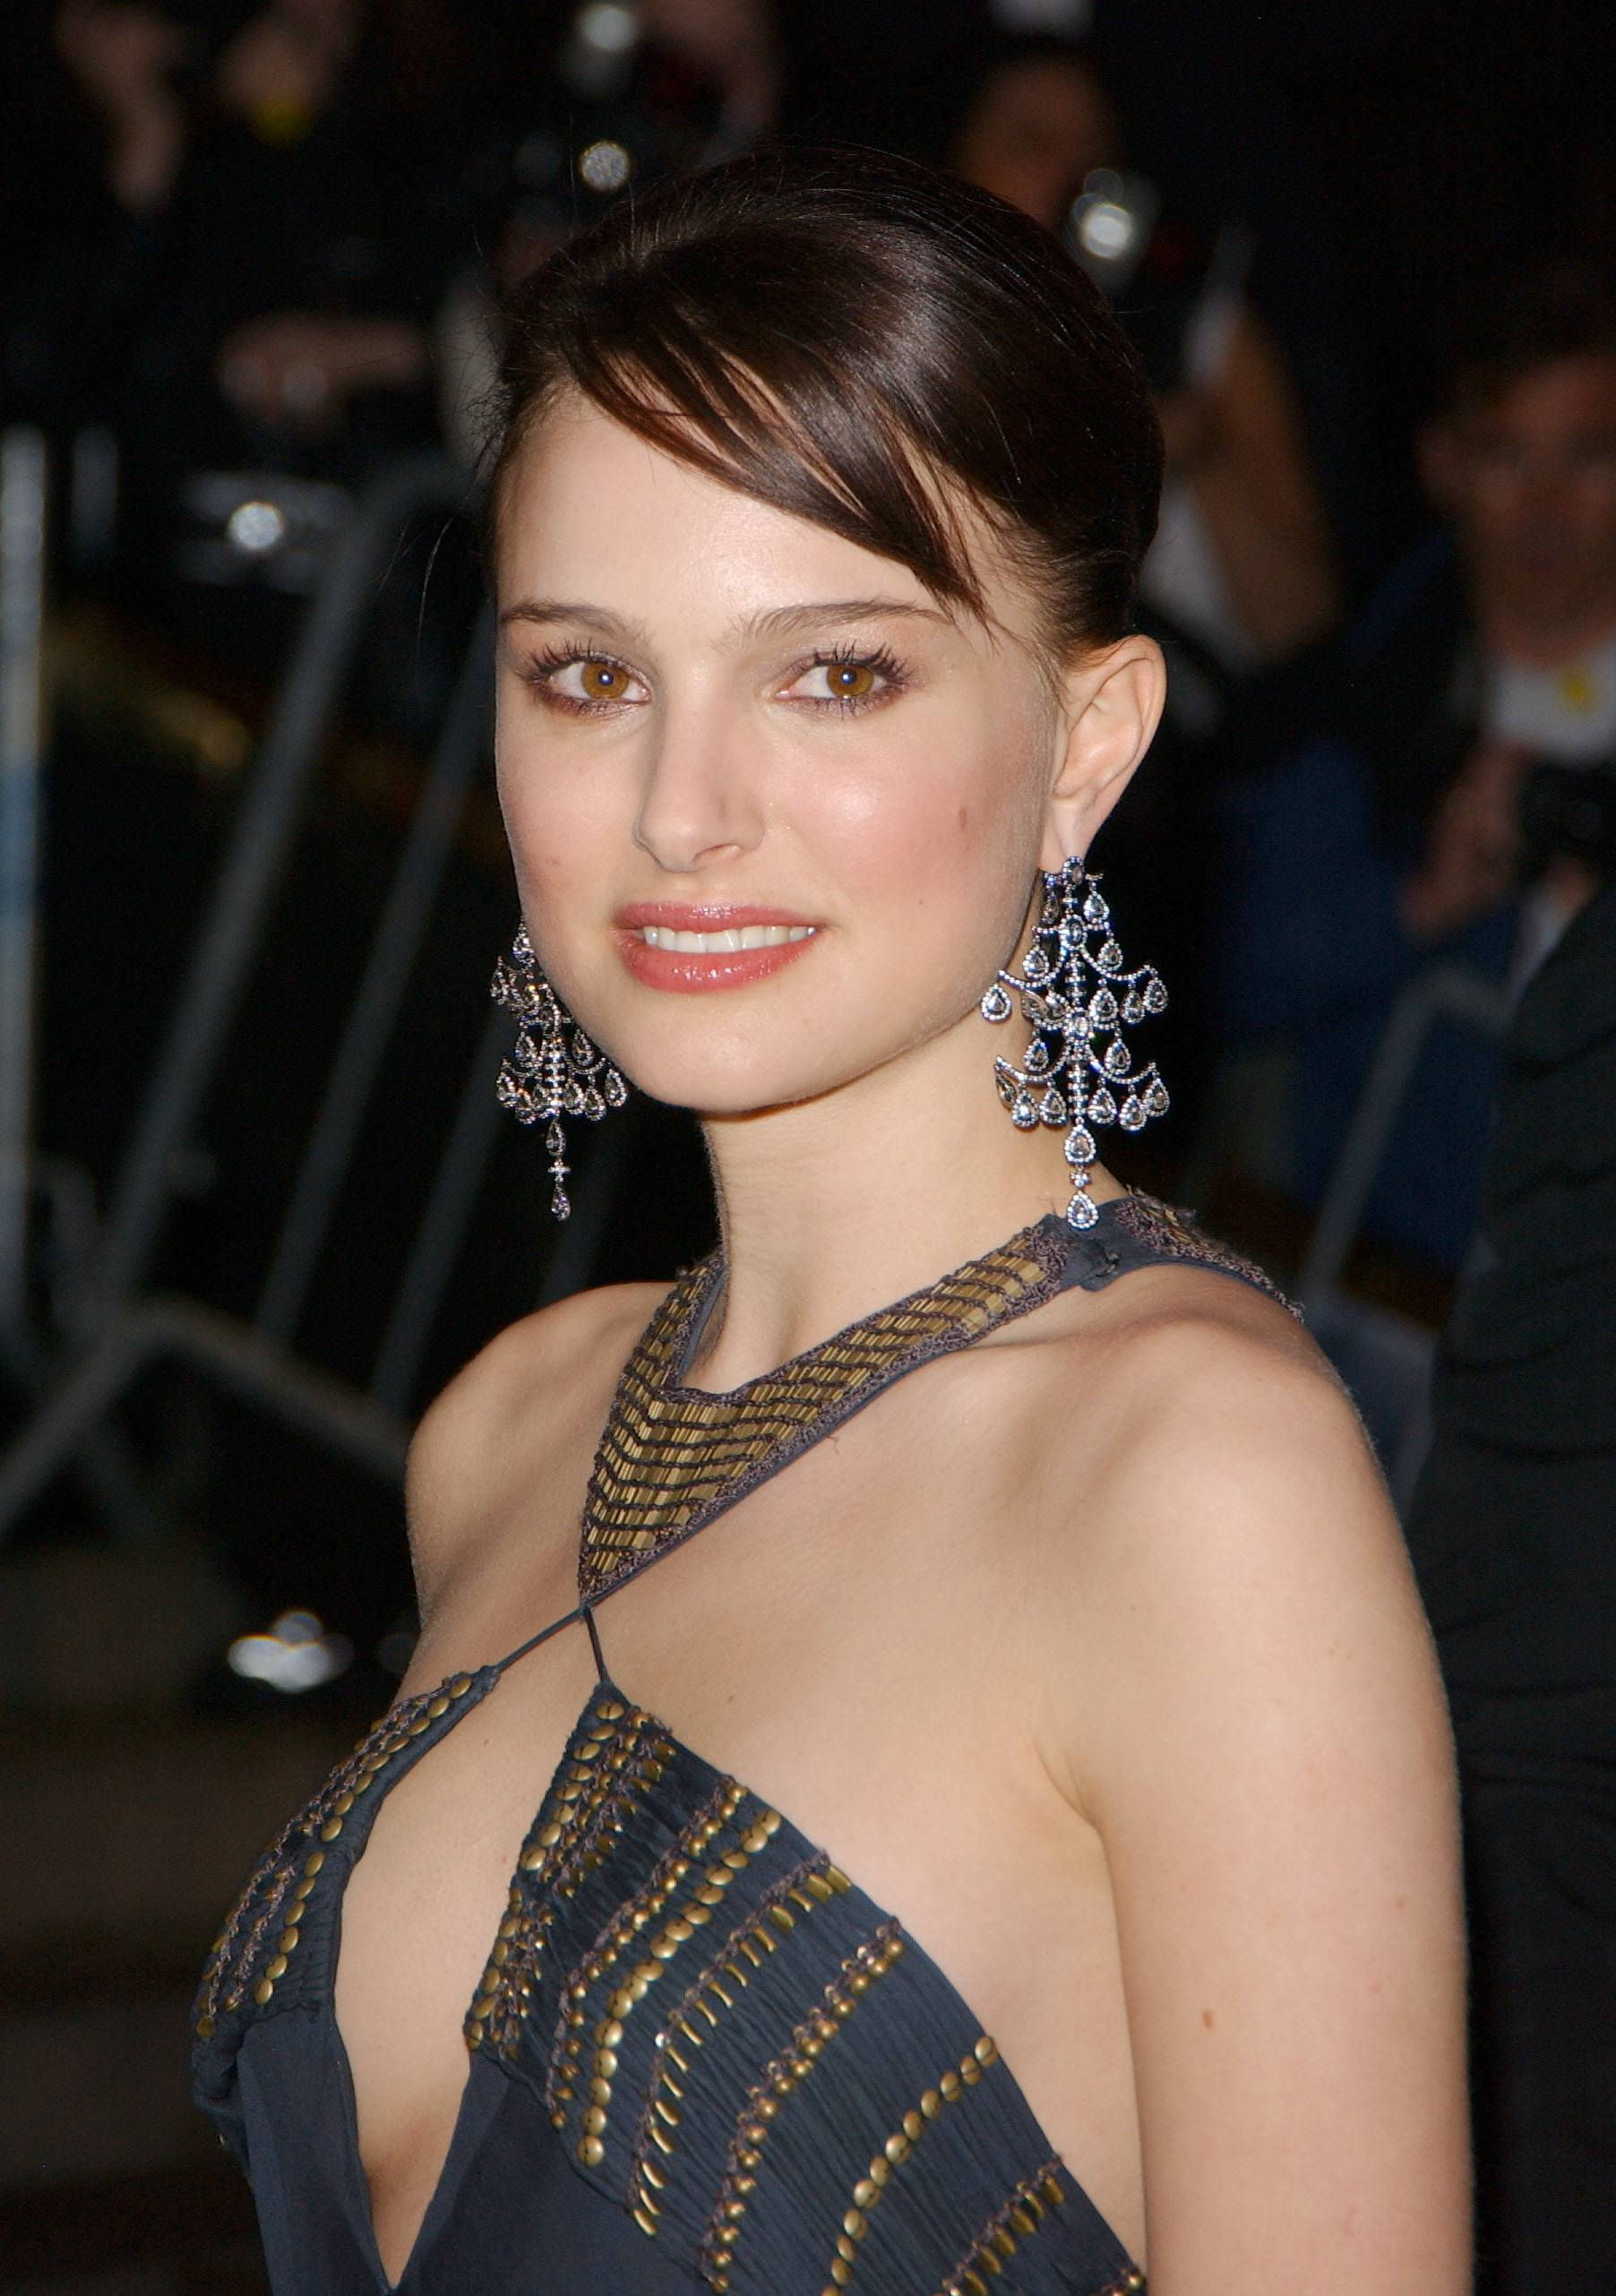 65 Sexy Natalie Portman Pictures Captured Over The Years